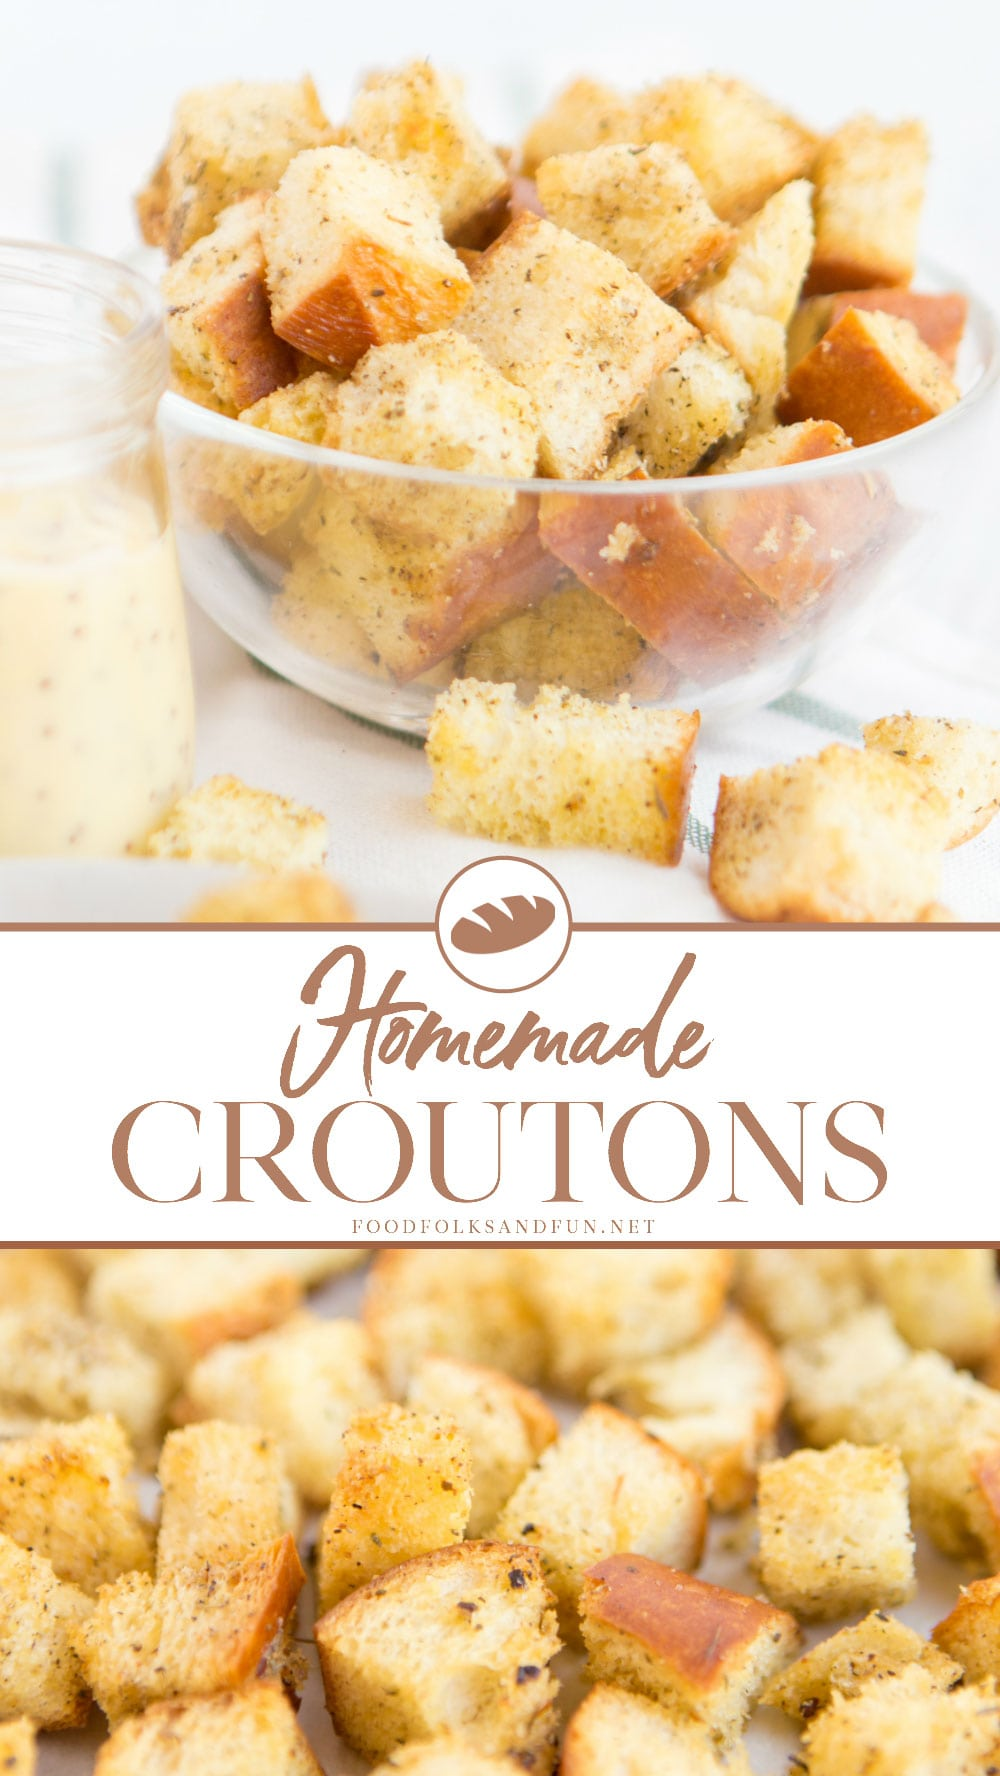 Homemade Croutons are one of those simple pleasures that I look forward to every week when I whip up a quick batch for my family. They're super simple to make and they add a little extra love to our salads. via @foodfolksandfun